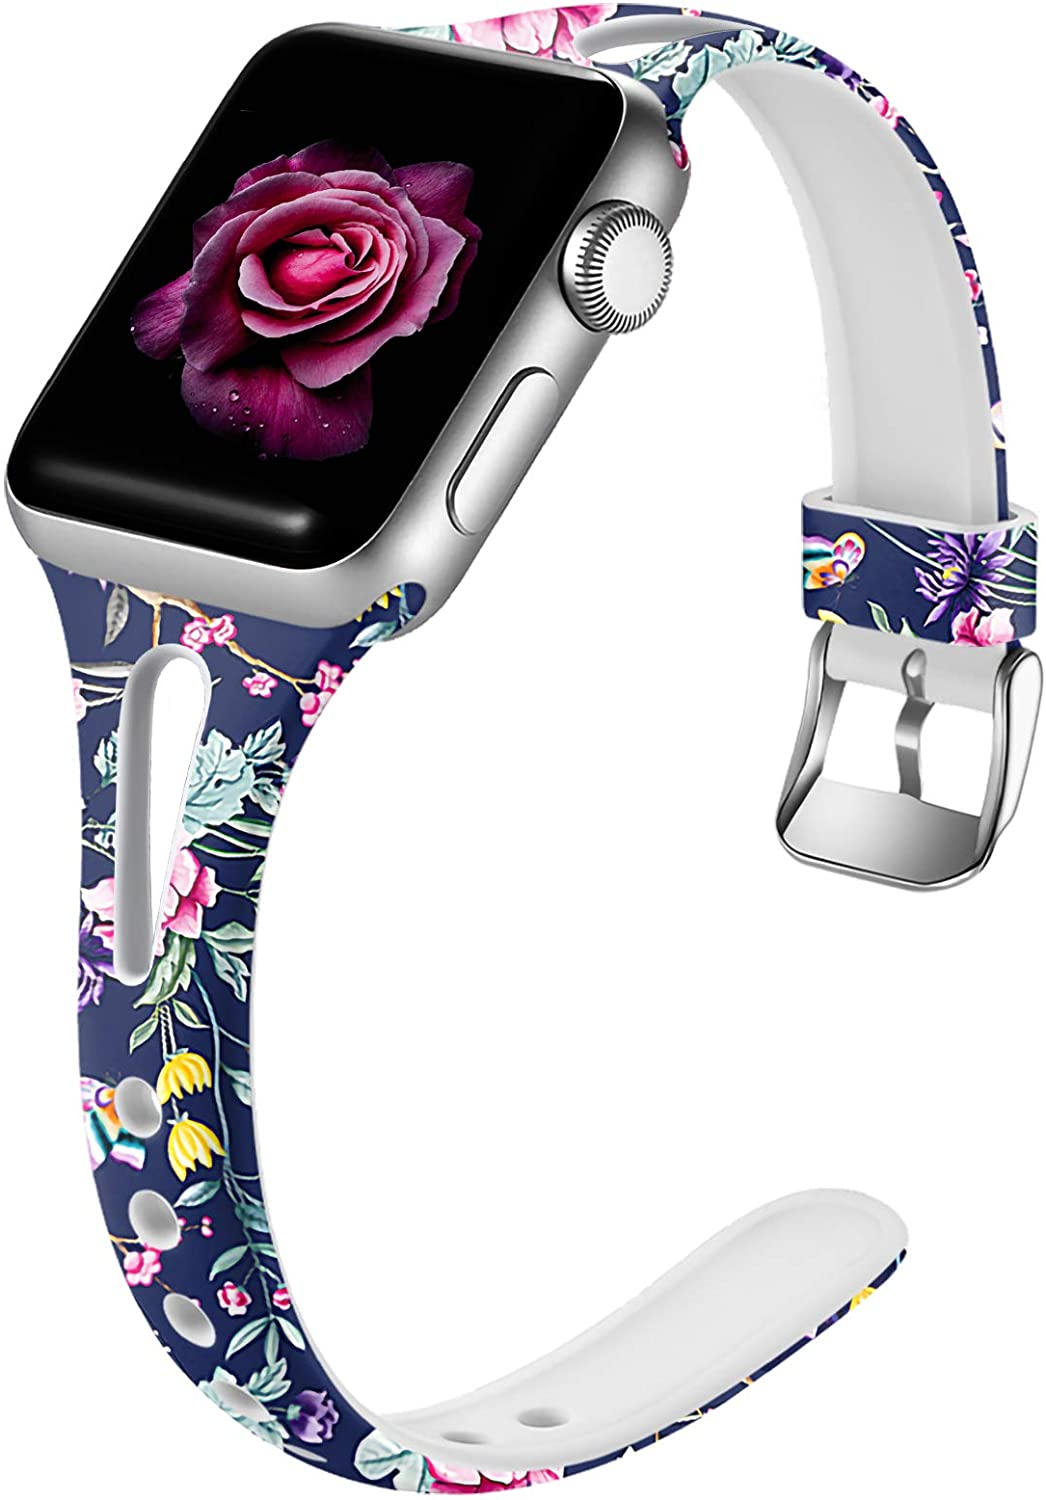 Easuny Floral Bands Compatible for Apple Watch Series 6 40mm Series 5 4 for Women, Soft Cute Slim for Apple Watch SE 38mm Bands,Series 3 2/1, iWatch Printed Silicone Thin Wristband S/M, Peony